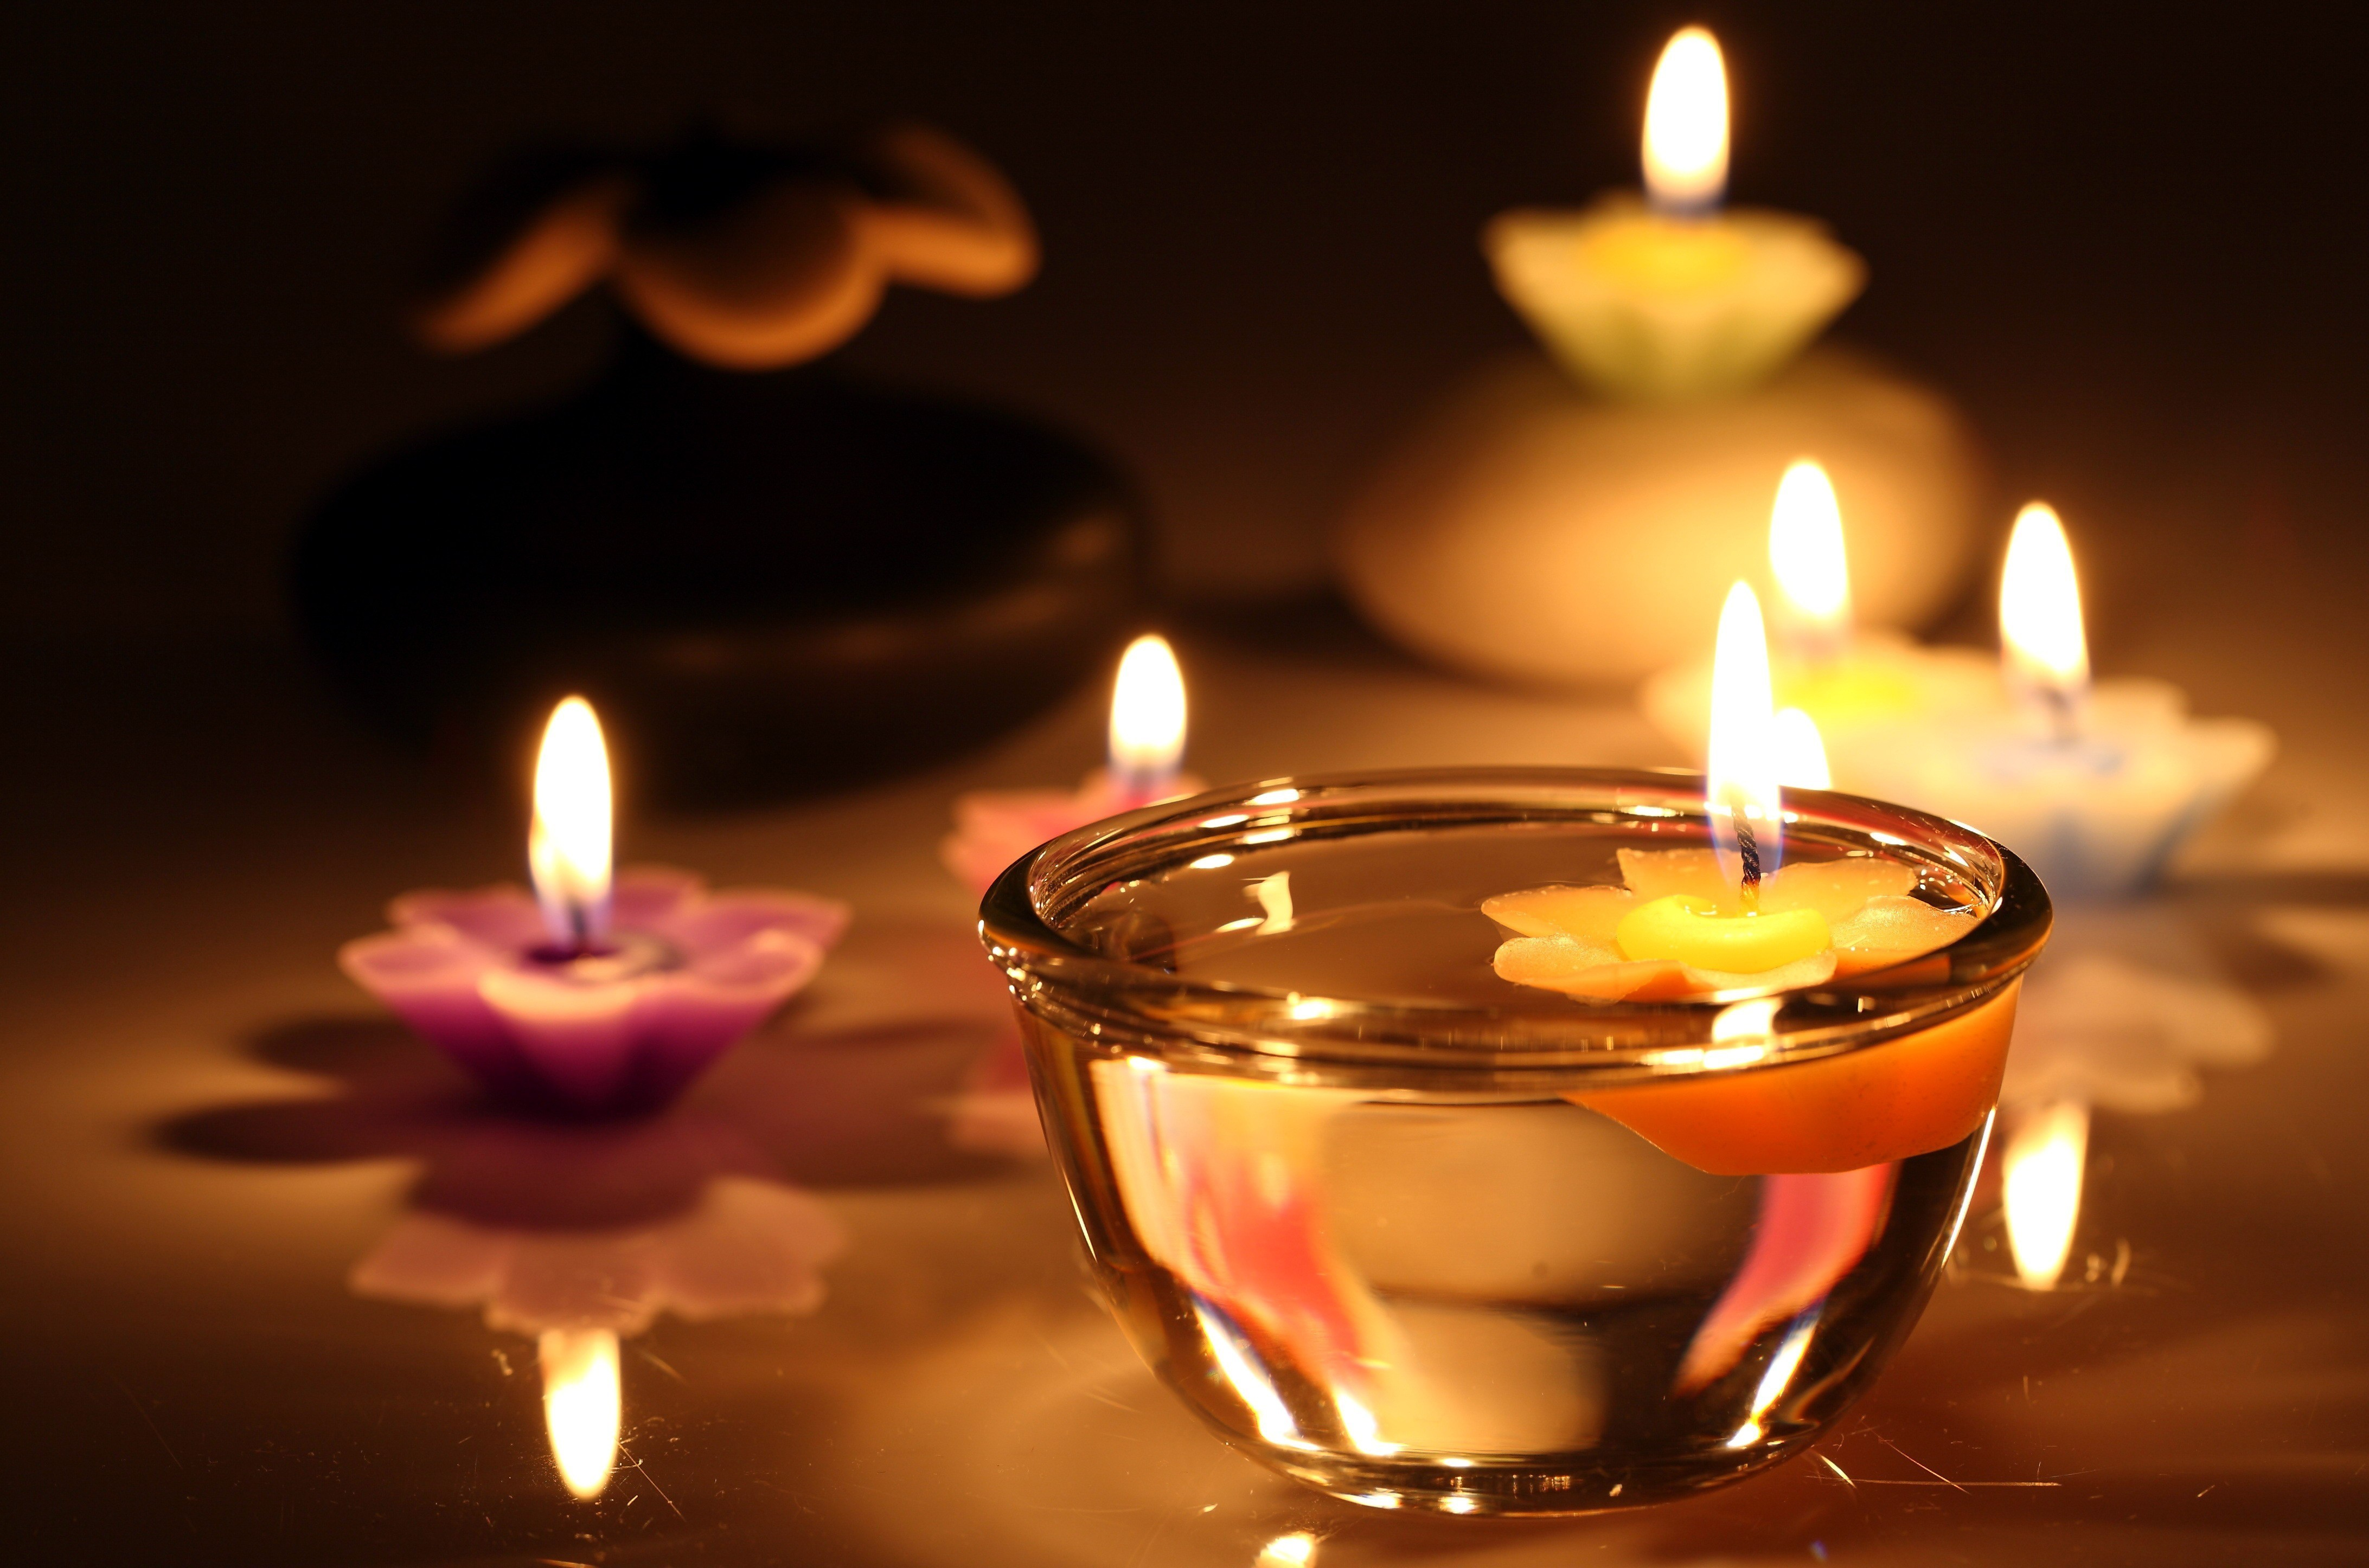 Candles Hd Wallpapers Candle Backgrounds And Images: Candle Wallpaper 34